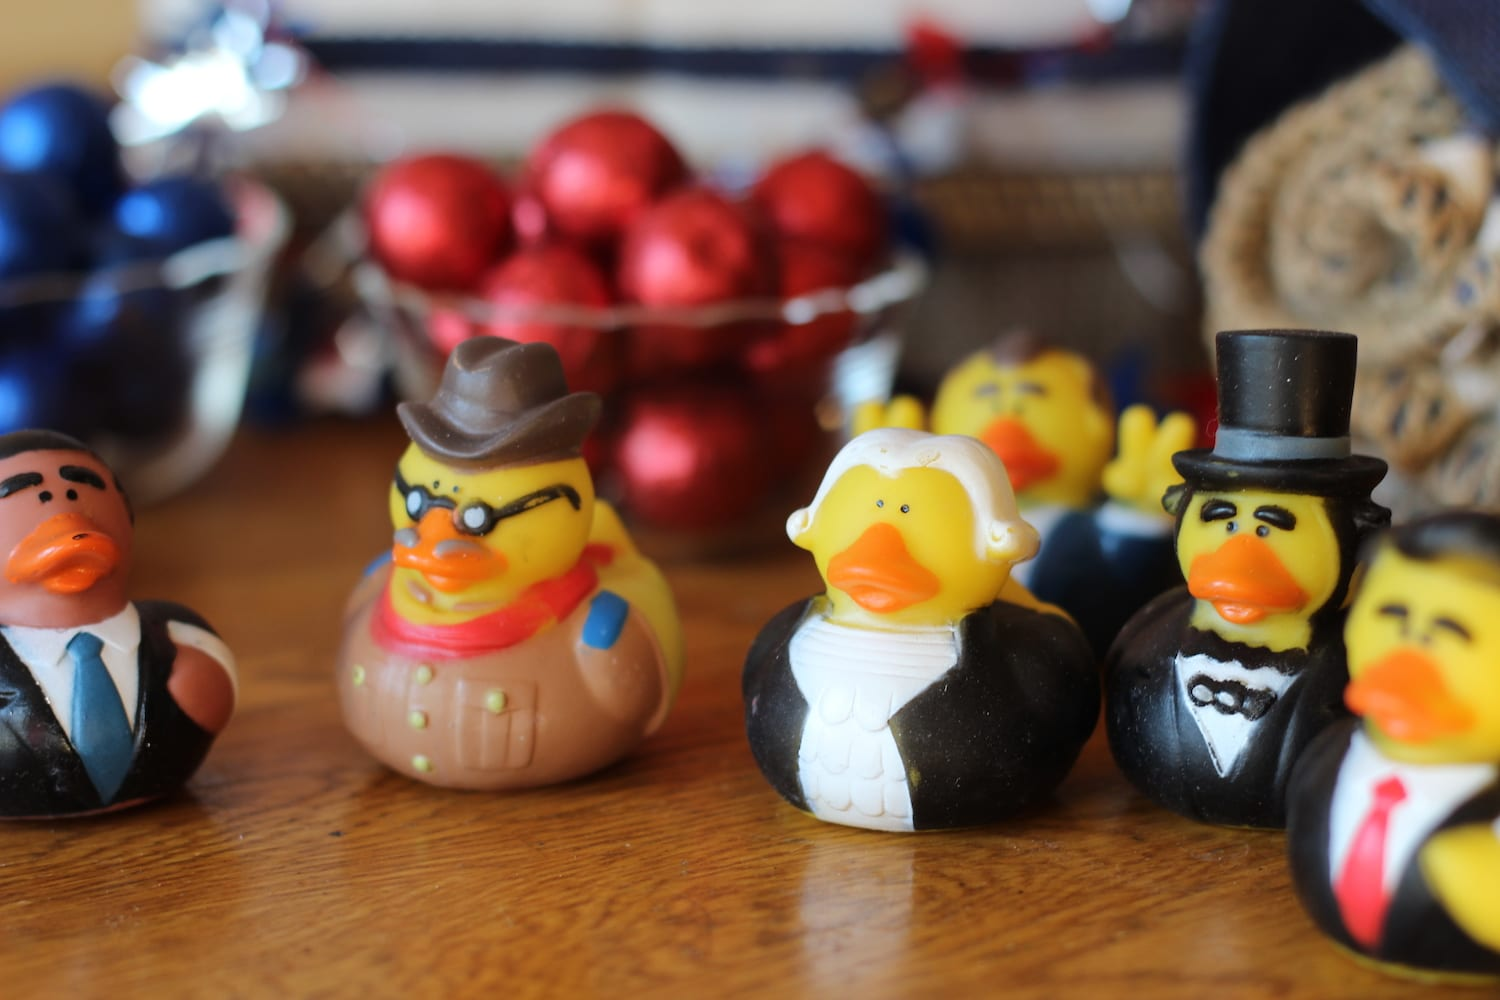 Presidential ducks and candy